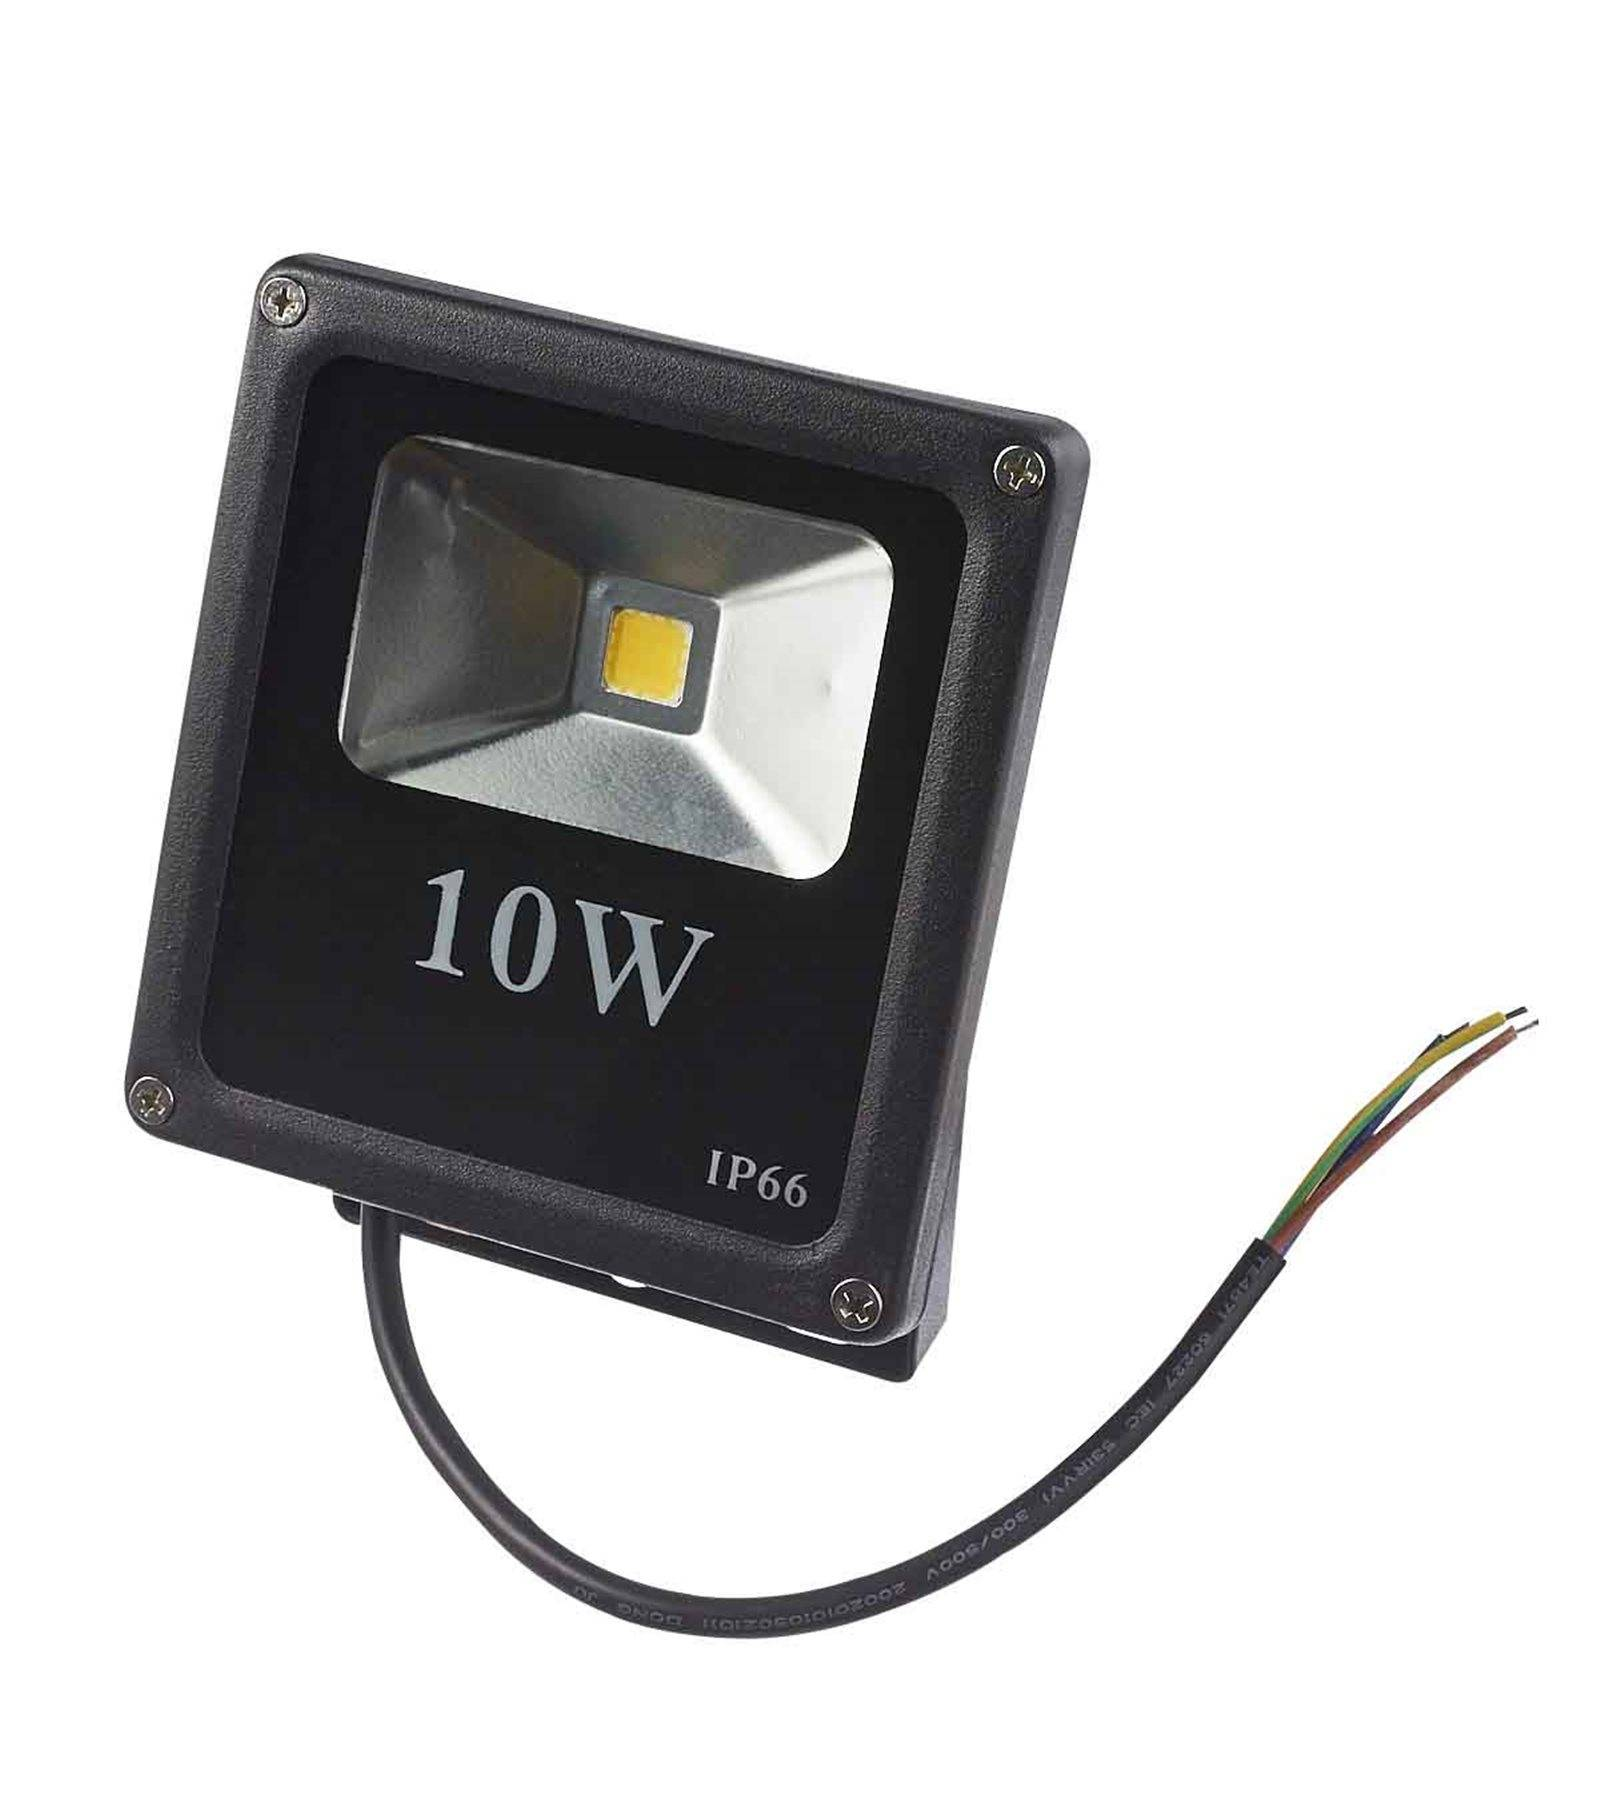 Spot A Led Exterieur Projecteur Led Ultra Slim 10w Led Integrés Ip65 Blanc Chaud Extérieur Hipow